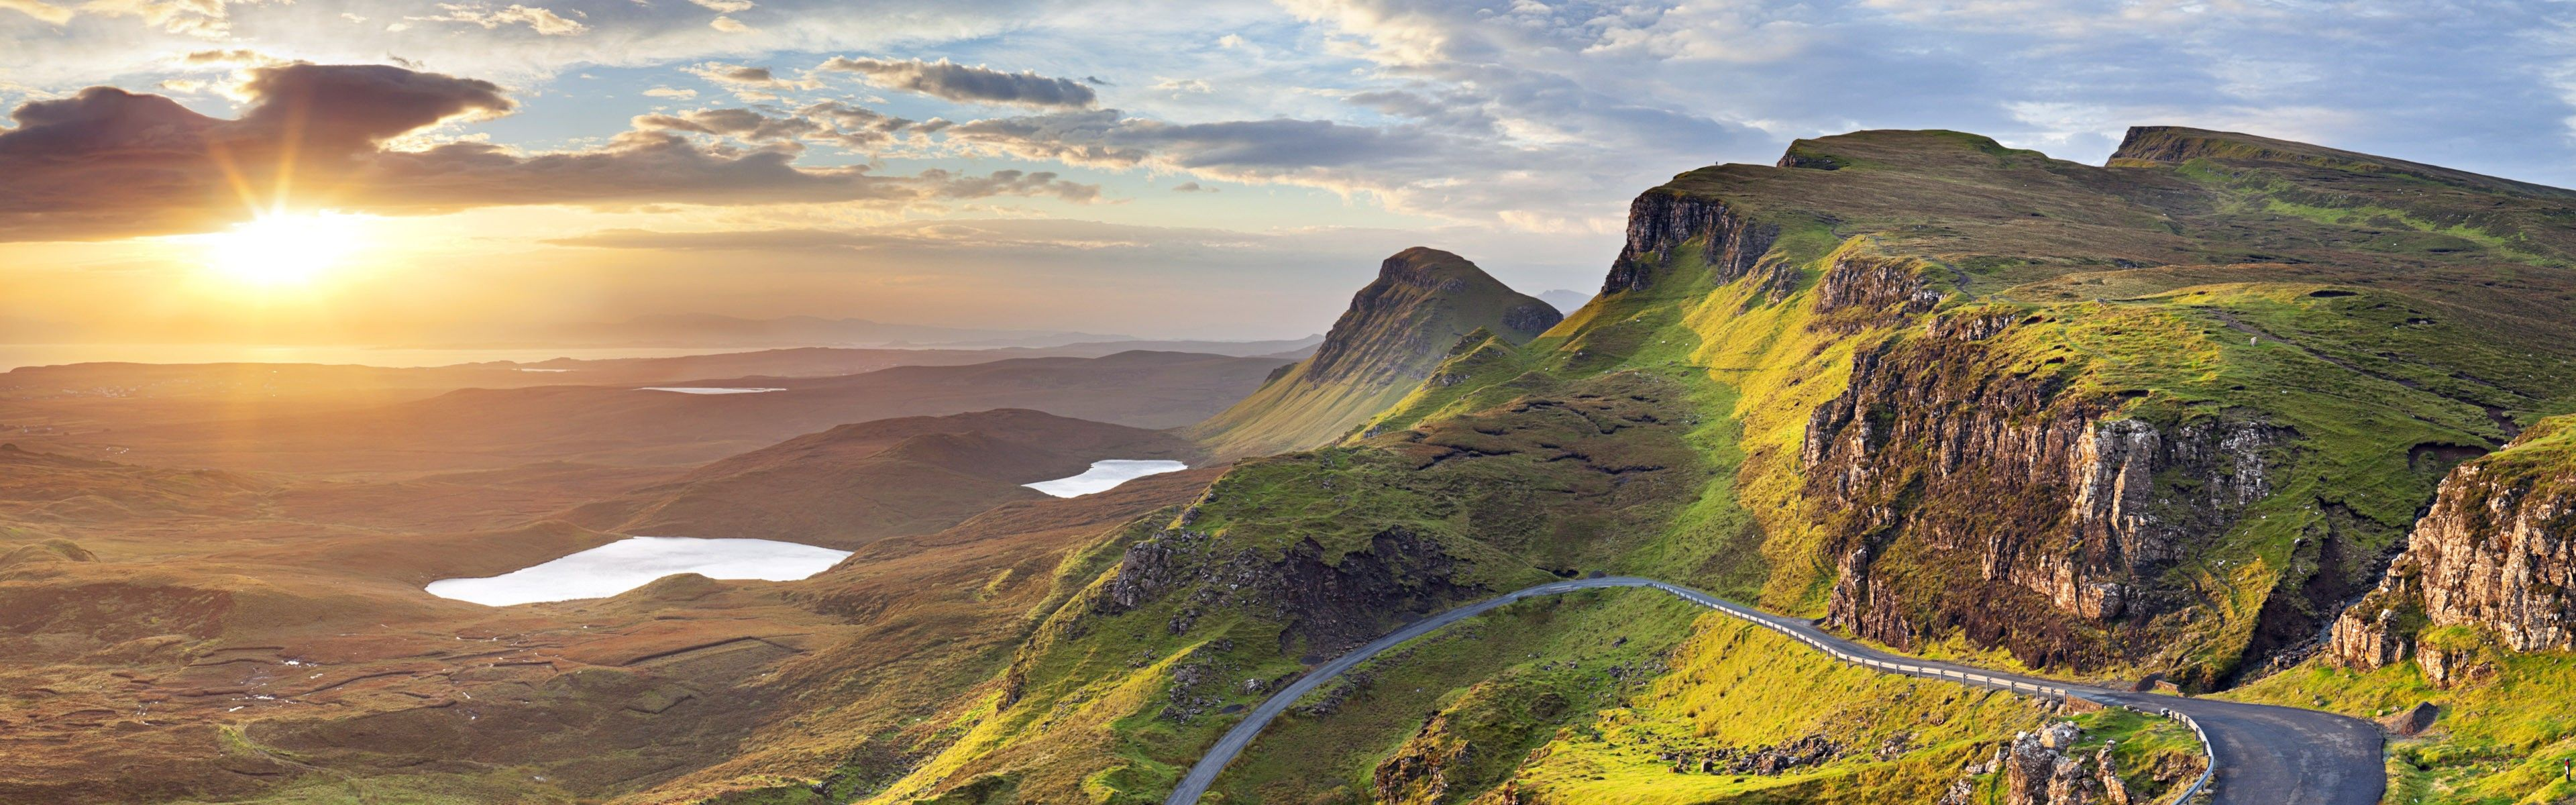 Panoramic Photography Scotland Hd Desktop Wallpaper